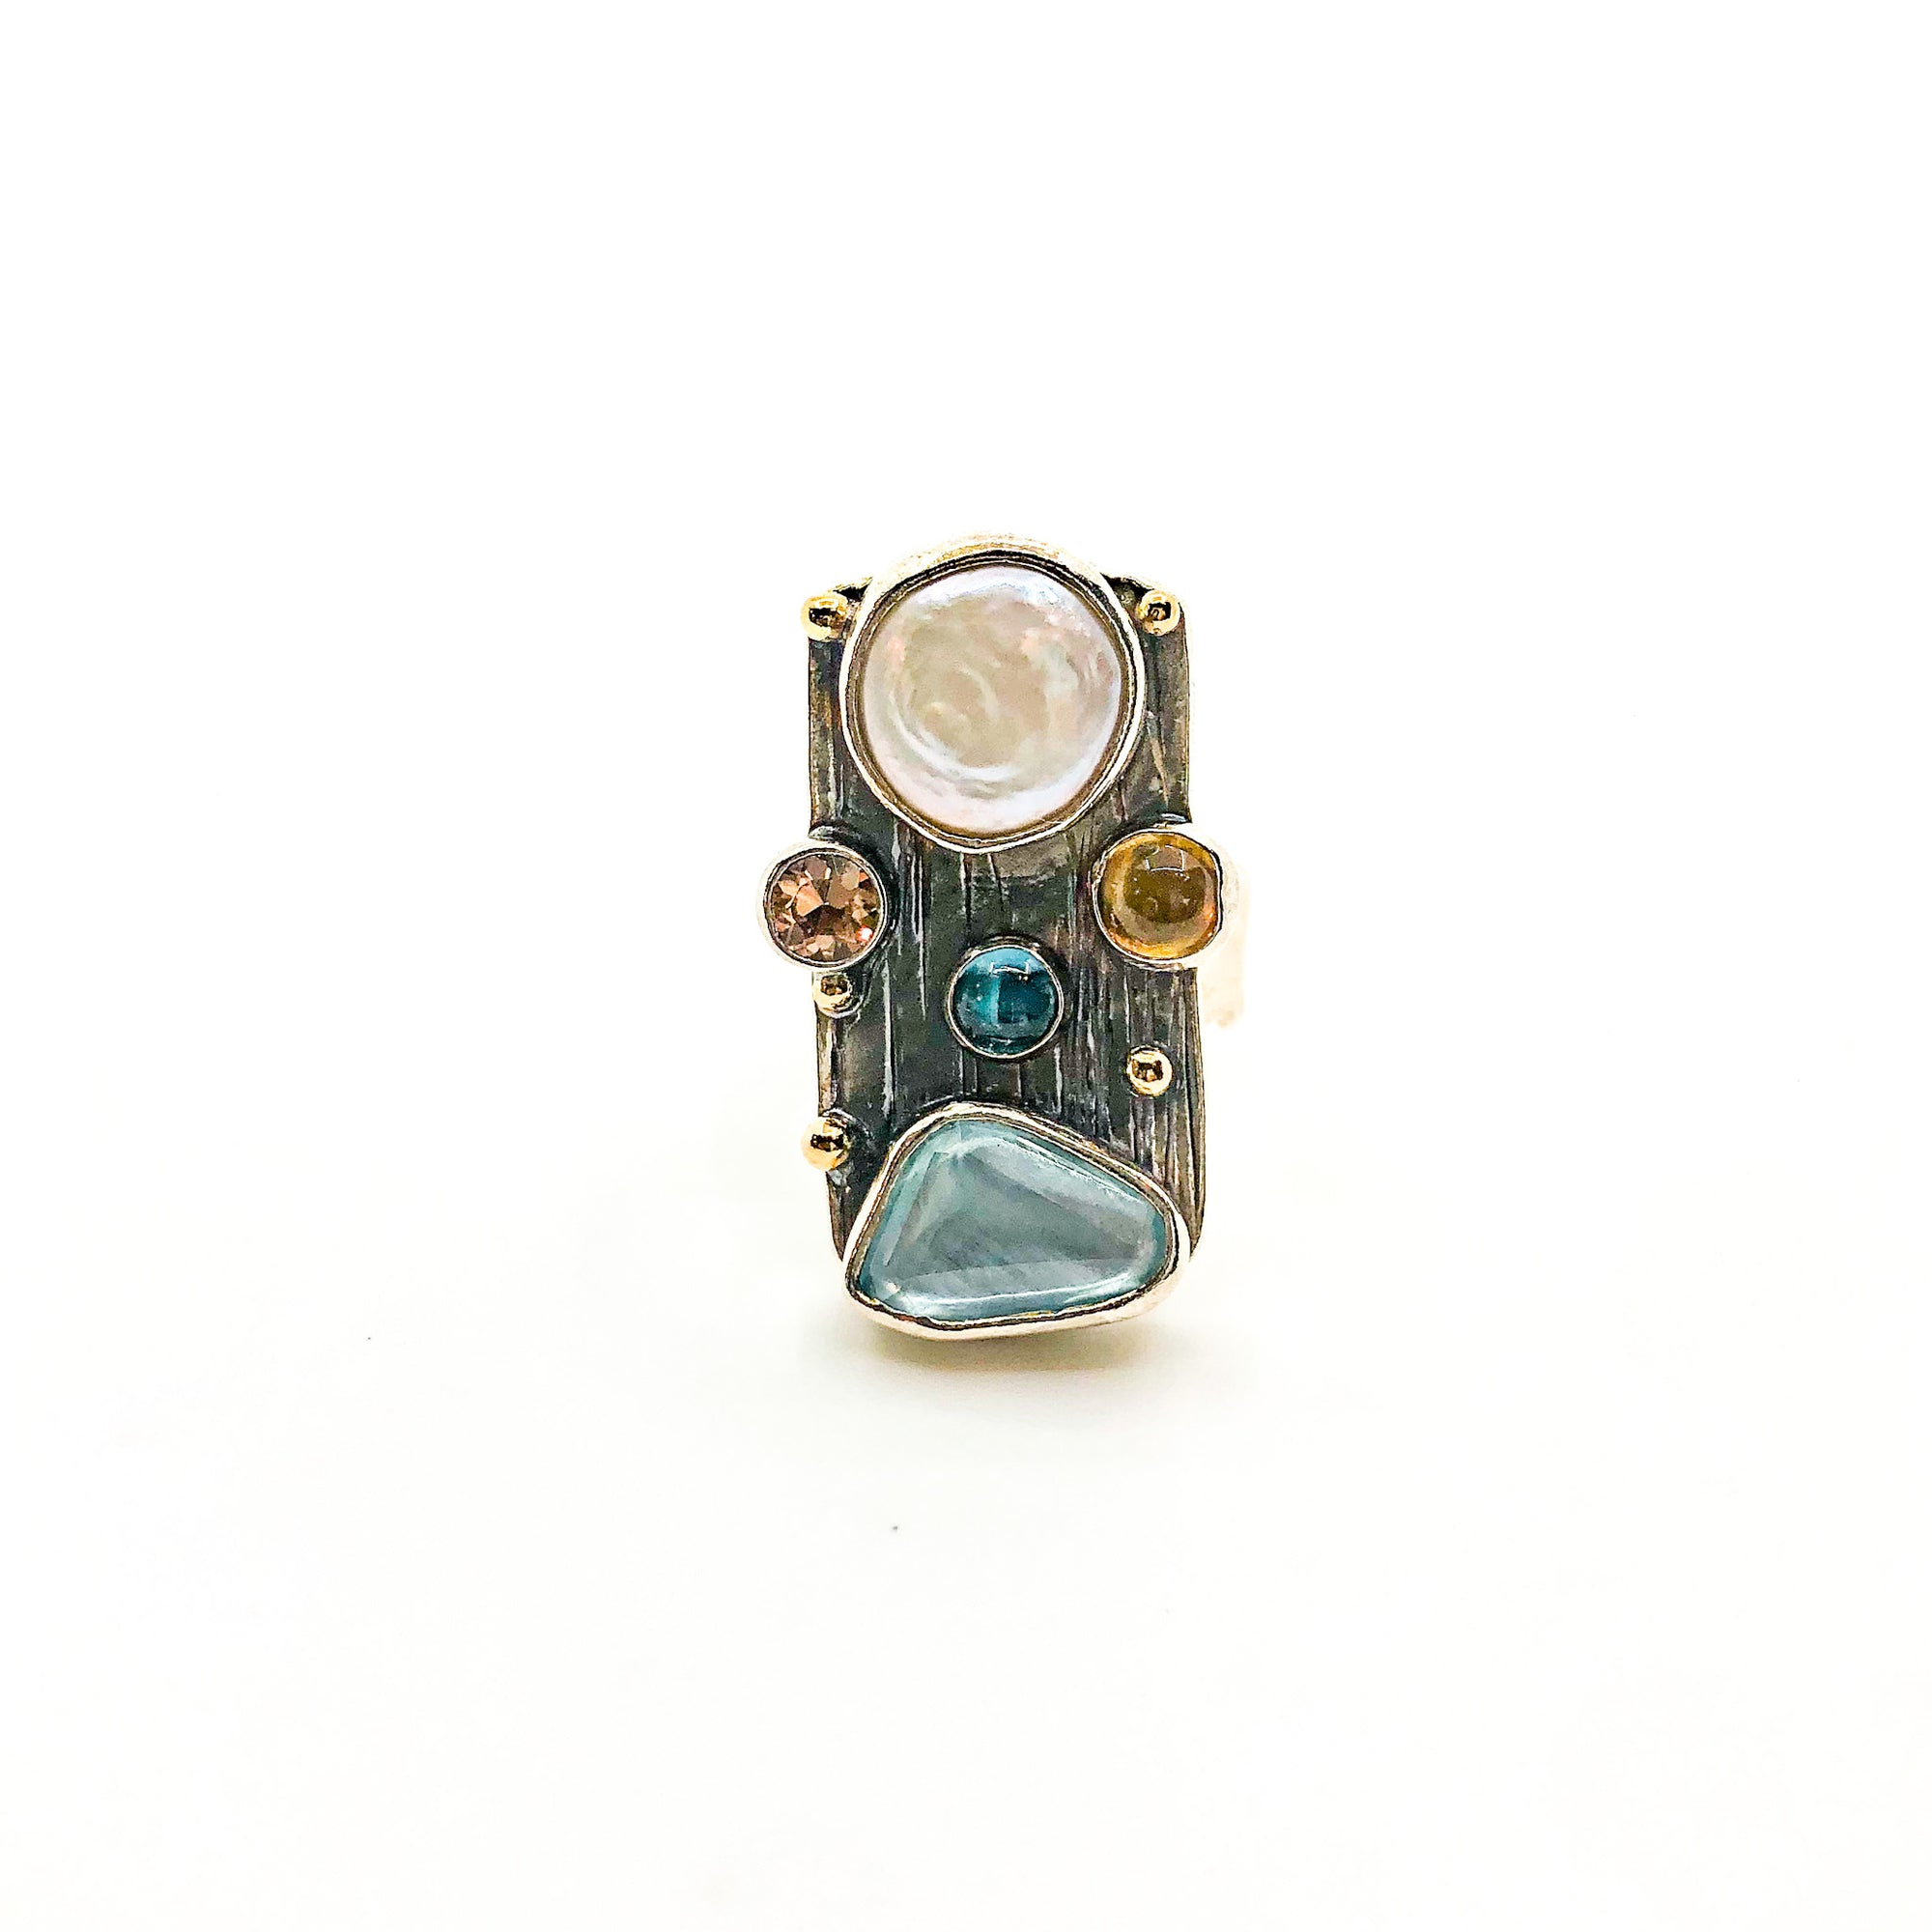 size 6.5 Sterling and 14k Silver Platter Ring with Rose Cut Aquamarine, Coin Pearl, Blue Topaz, Citrine, and Topaz by Judie Raiford